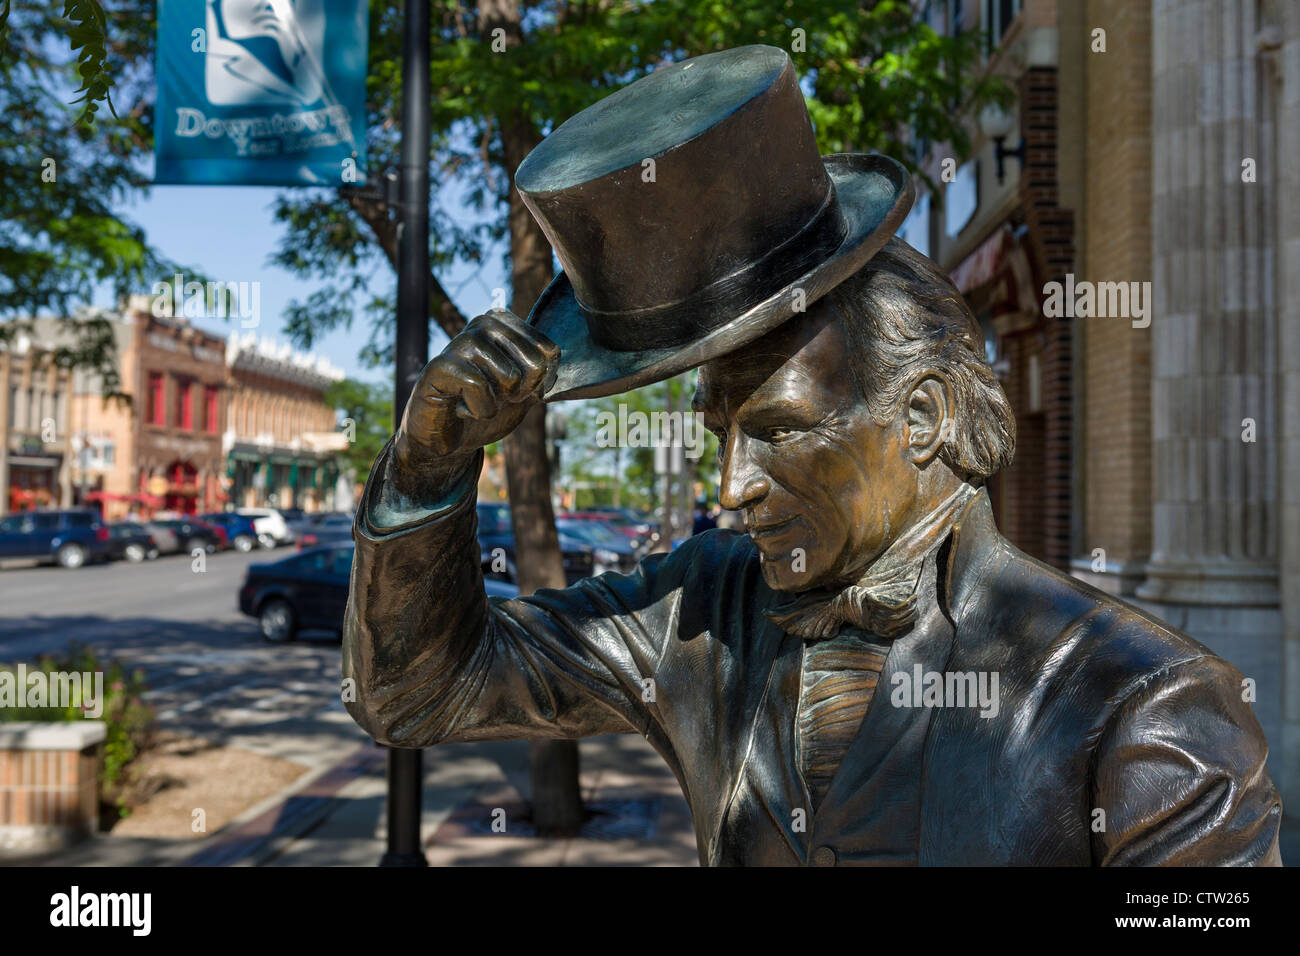 Statue of President James Monroe, one of a series of bronze statues of US presidents in downtown Rapid City, South - Stock Image